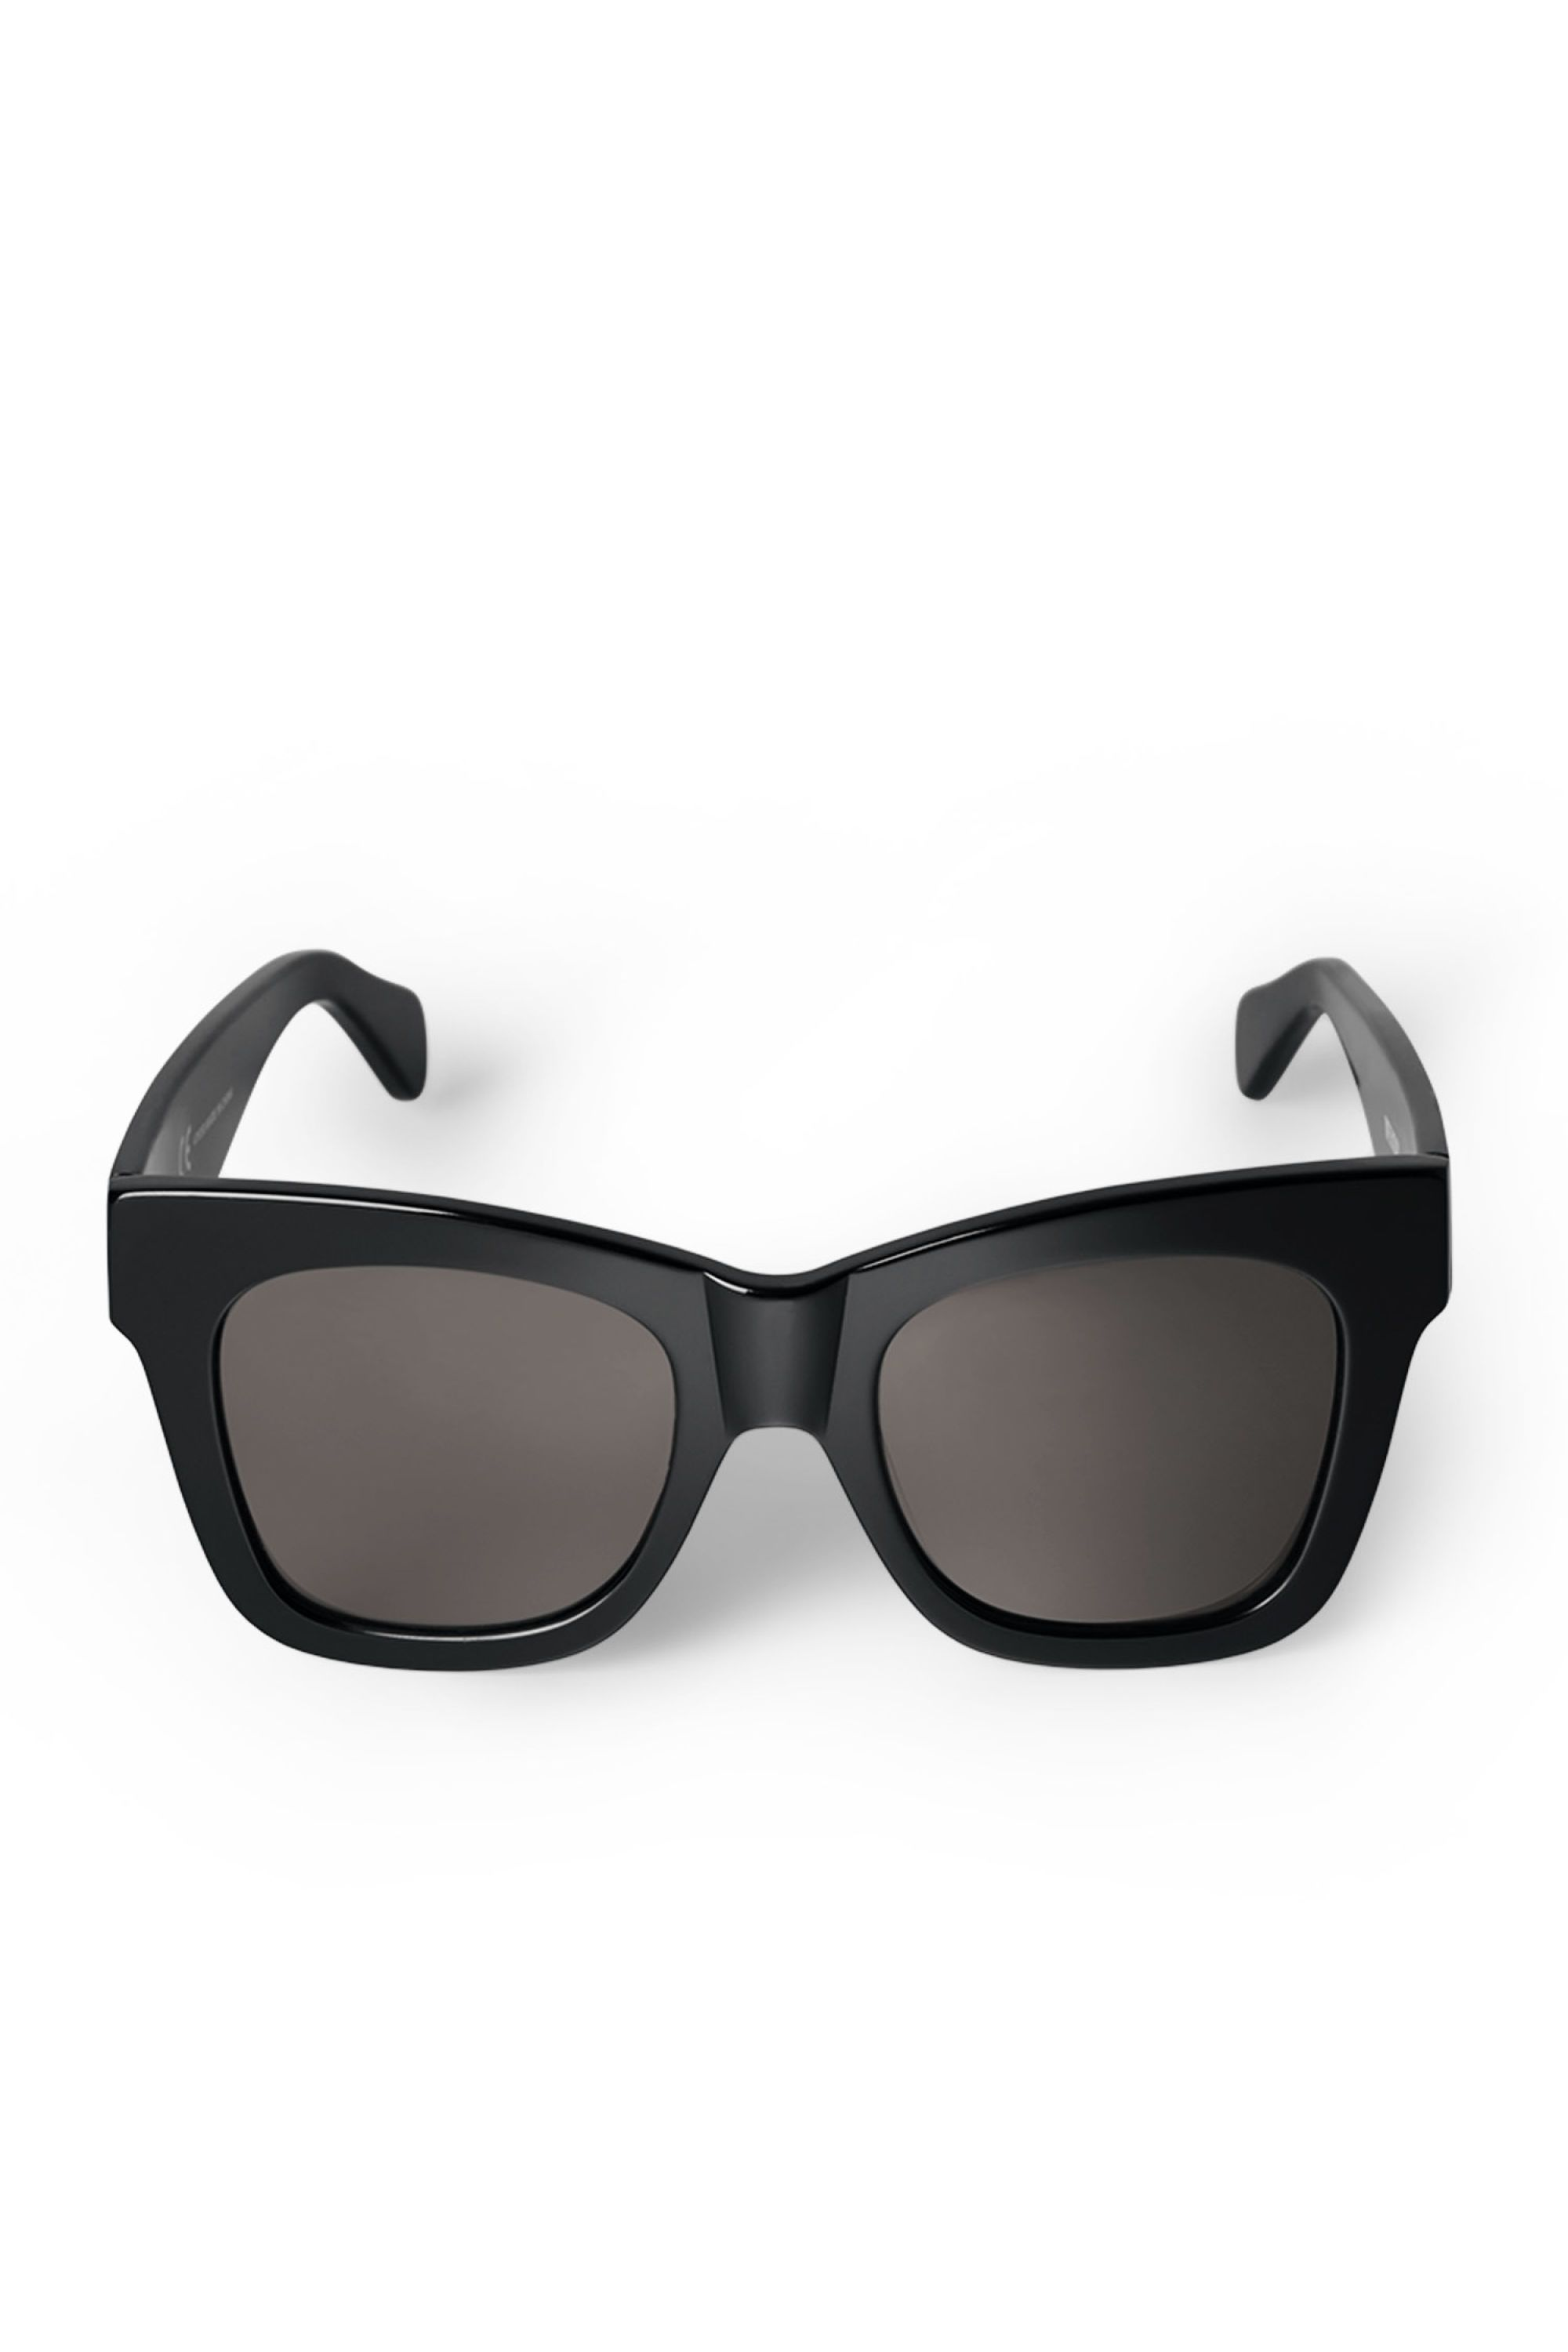 2c33407fa43 Voyager Acetate Sunglasses are rectangular statement glasses with thick  black frames with a melange pattern in